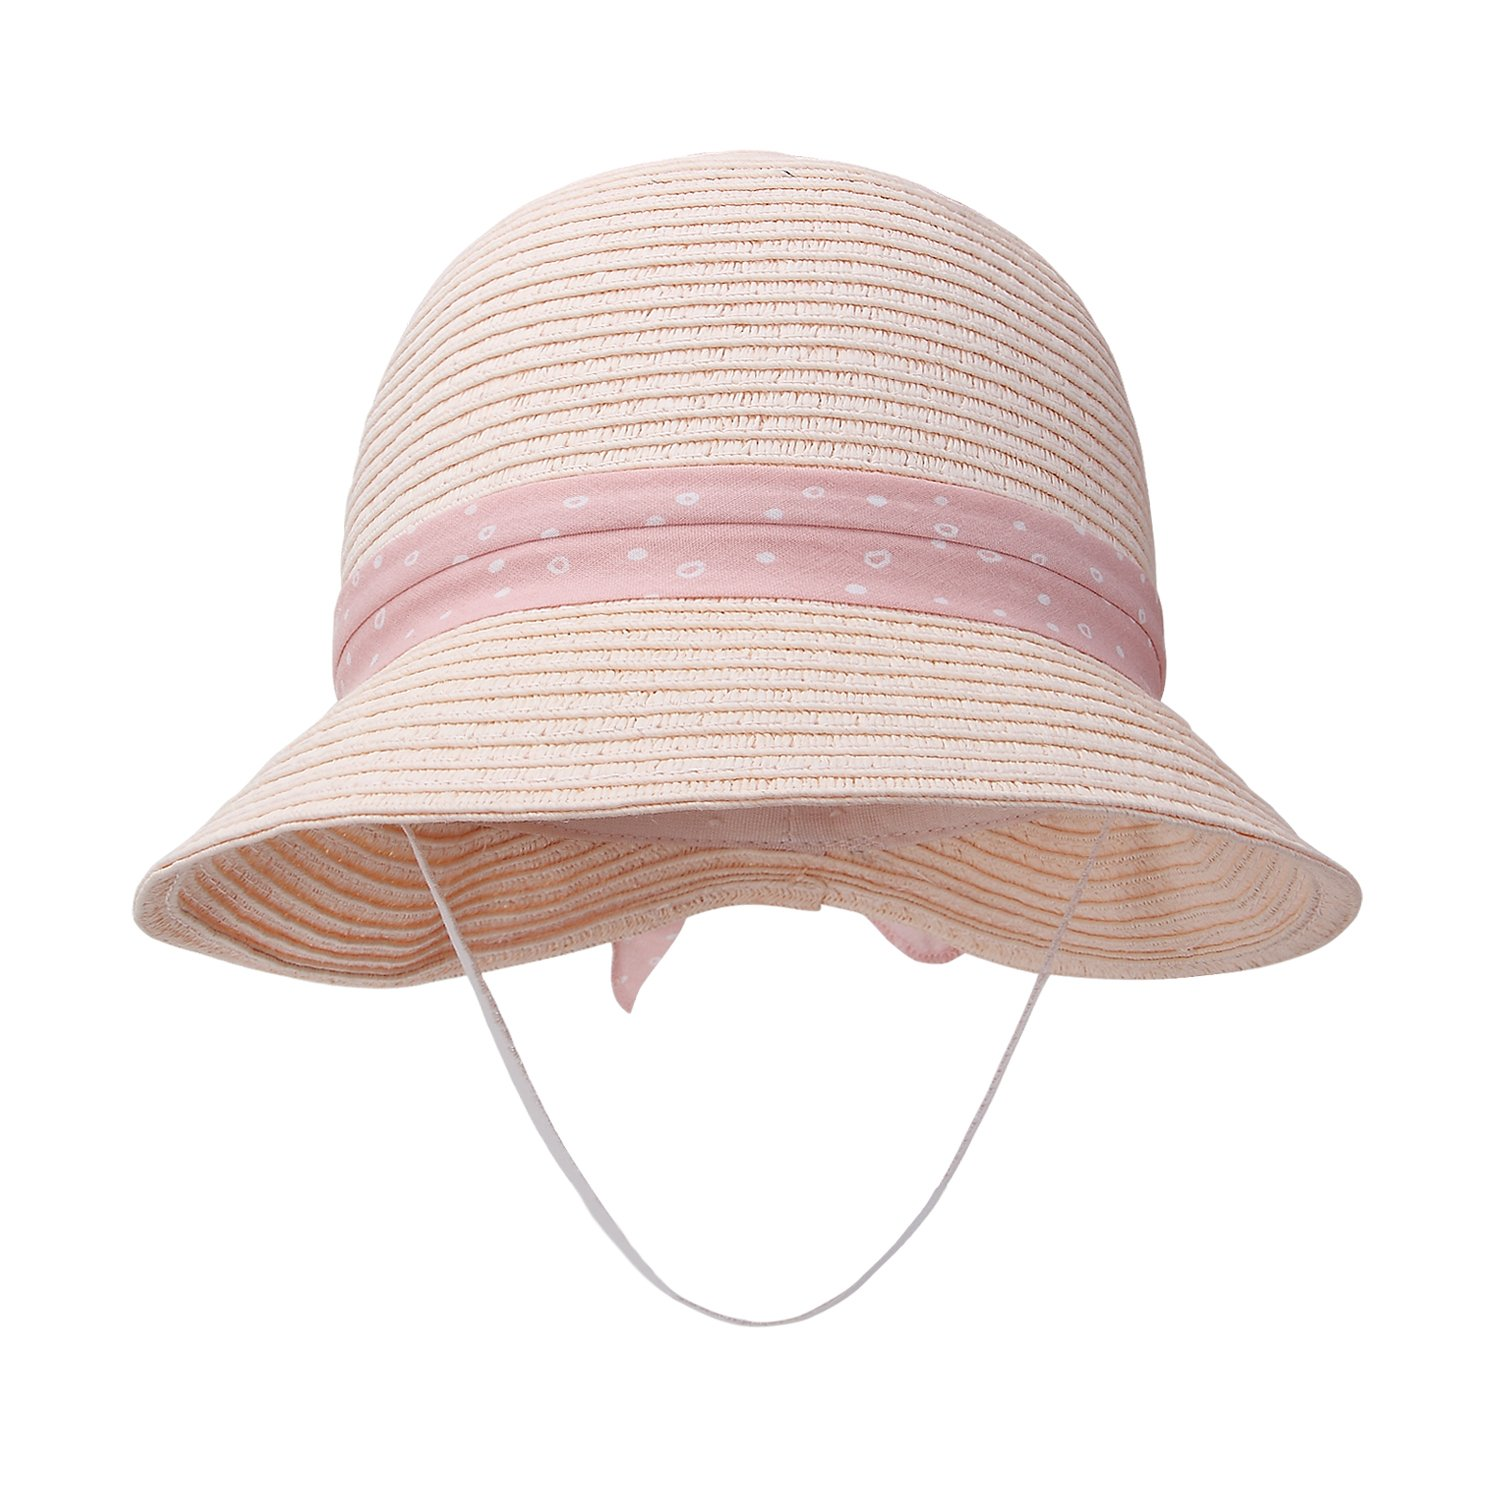 Baby Girl Straw Hats Toddler Girl Summer Hats Baby Sun Hats 0-6years Old (52cm(20.1in Head Circumference), Pink)